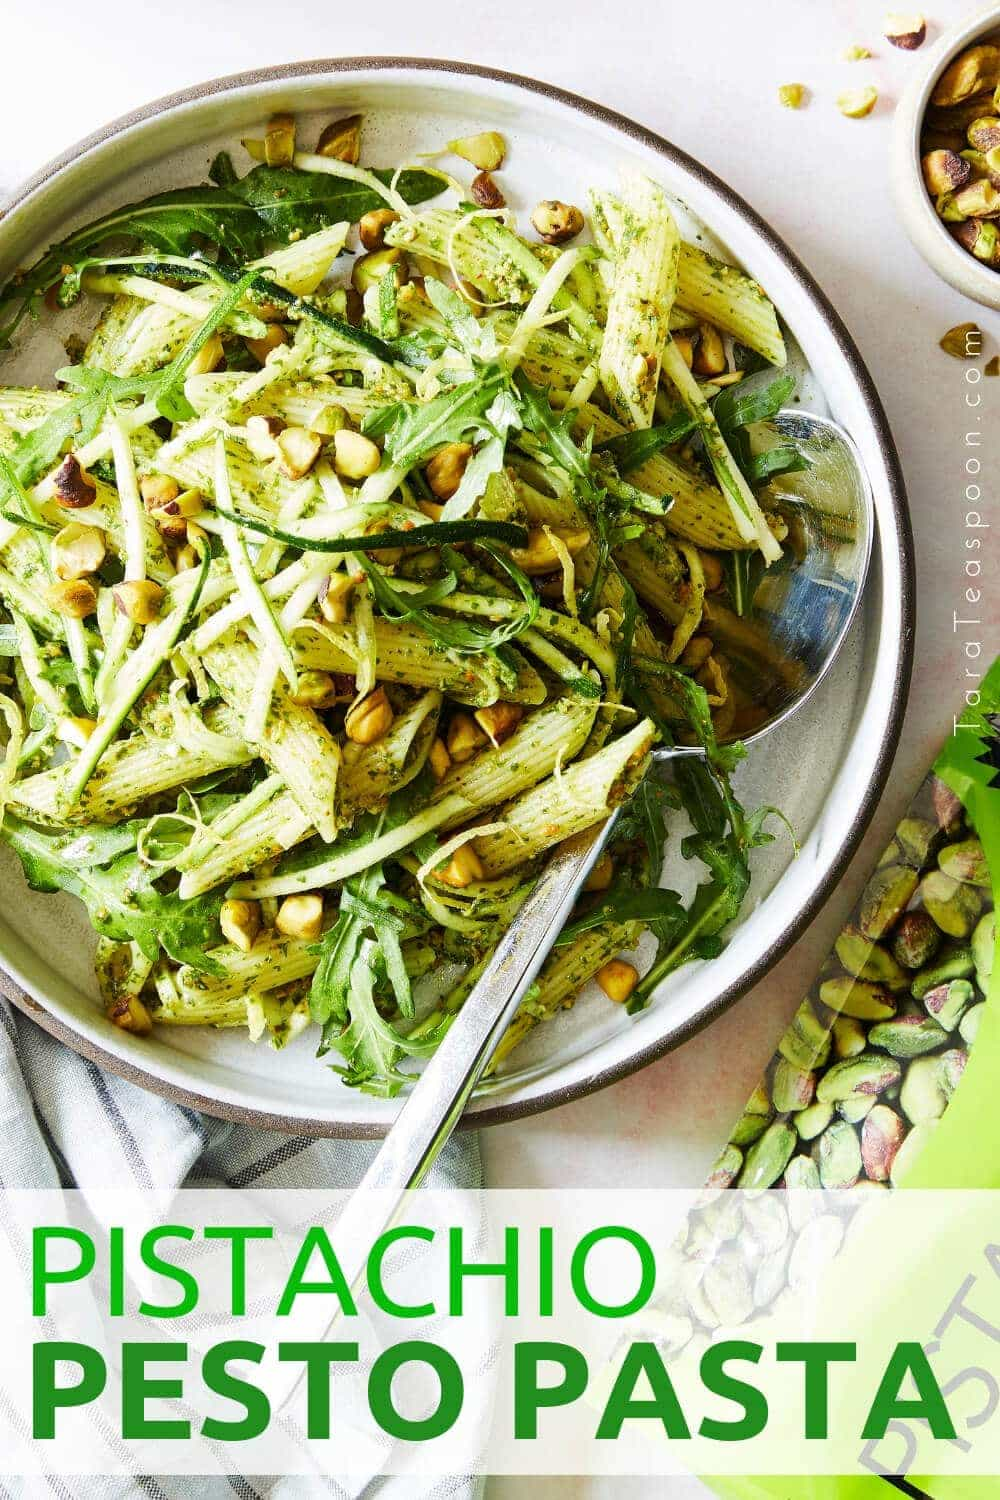 Pistachio pesto pasta in a bowl pin